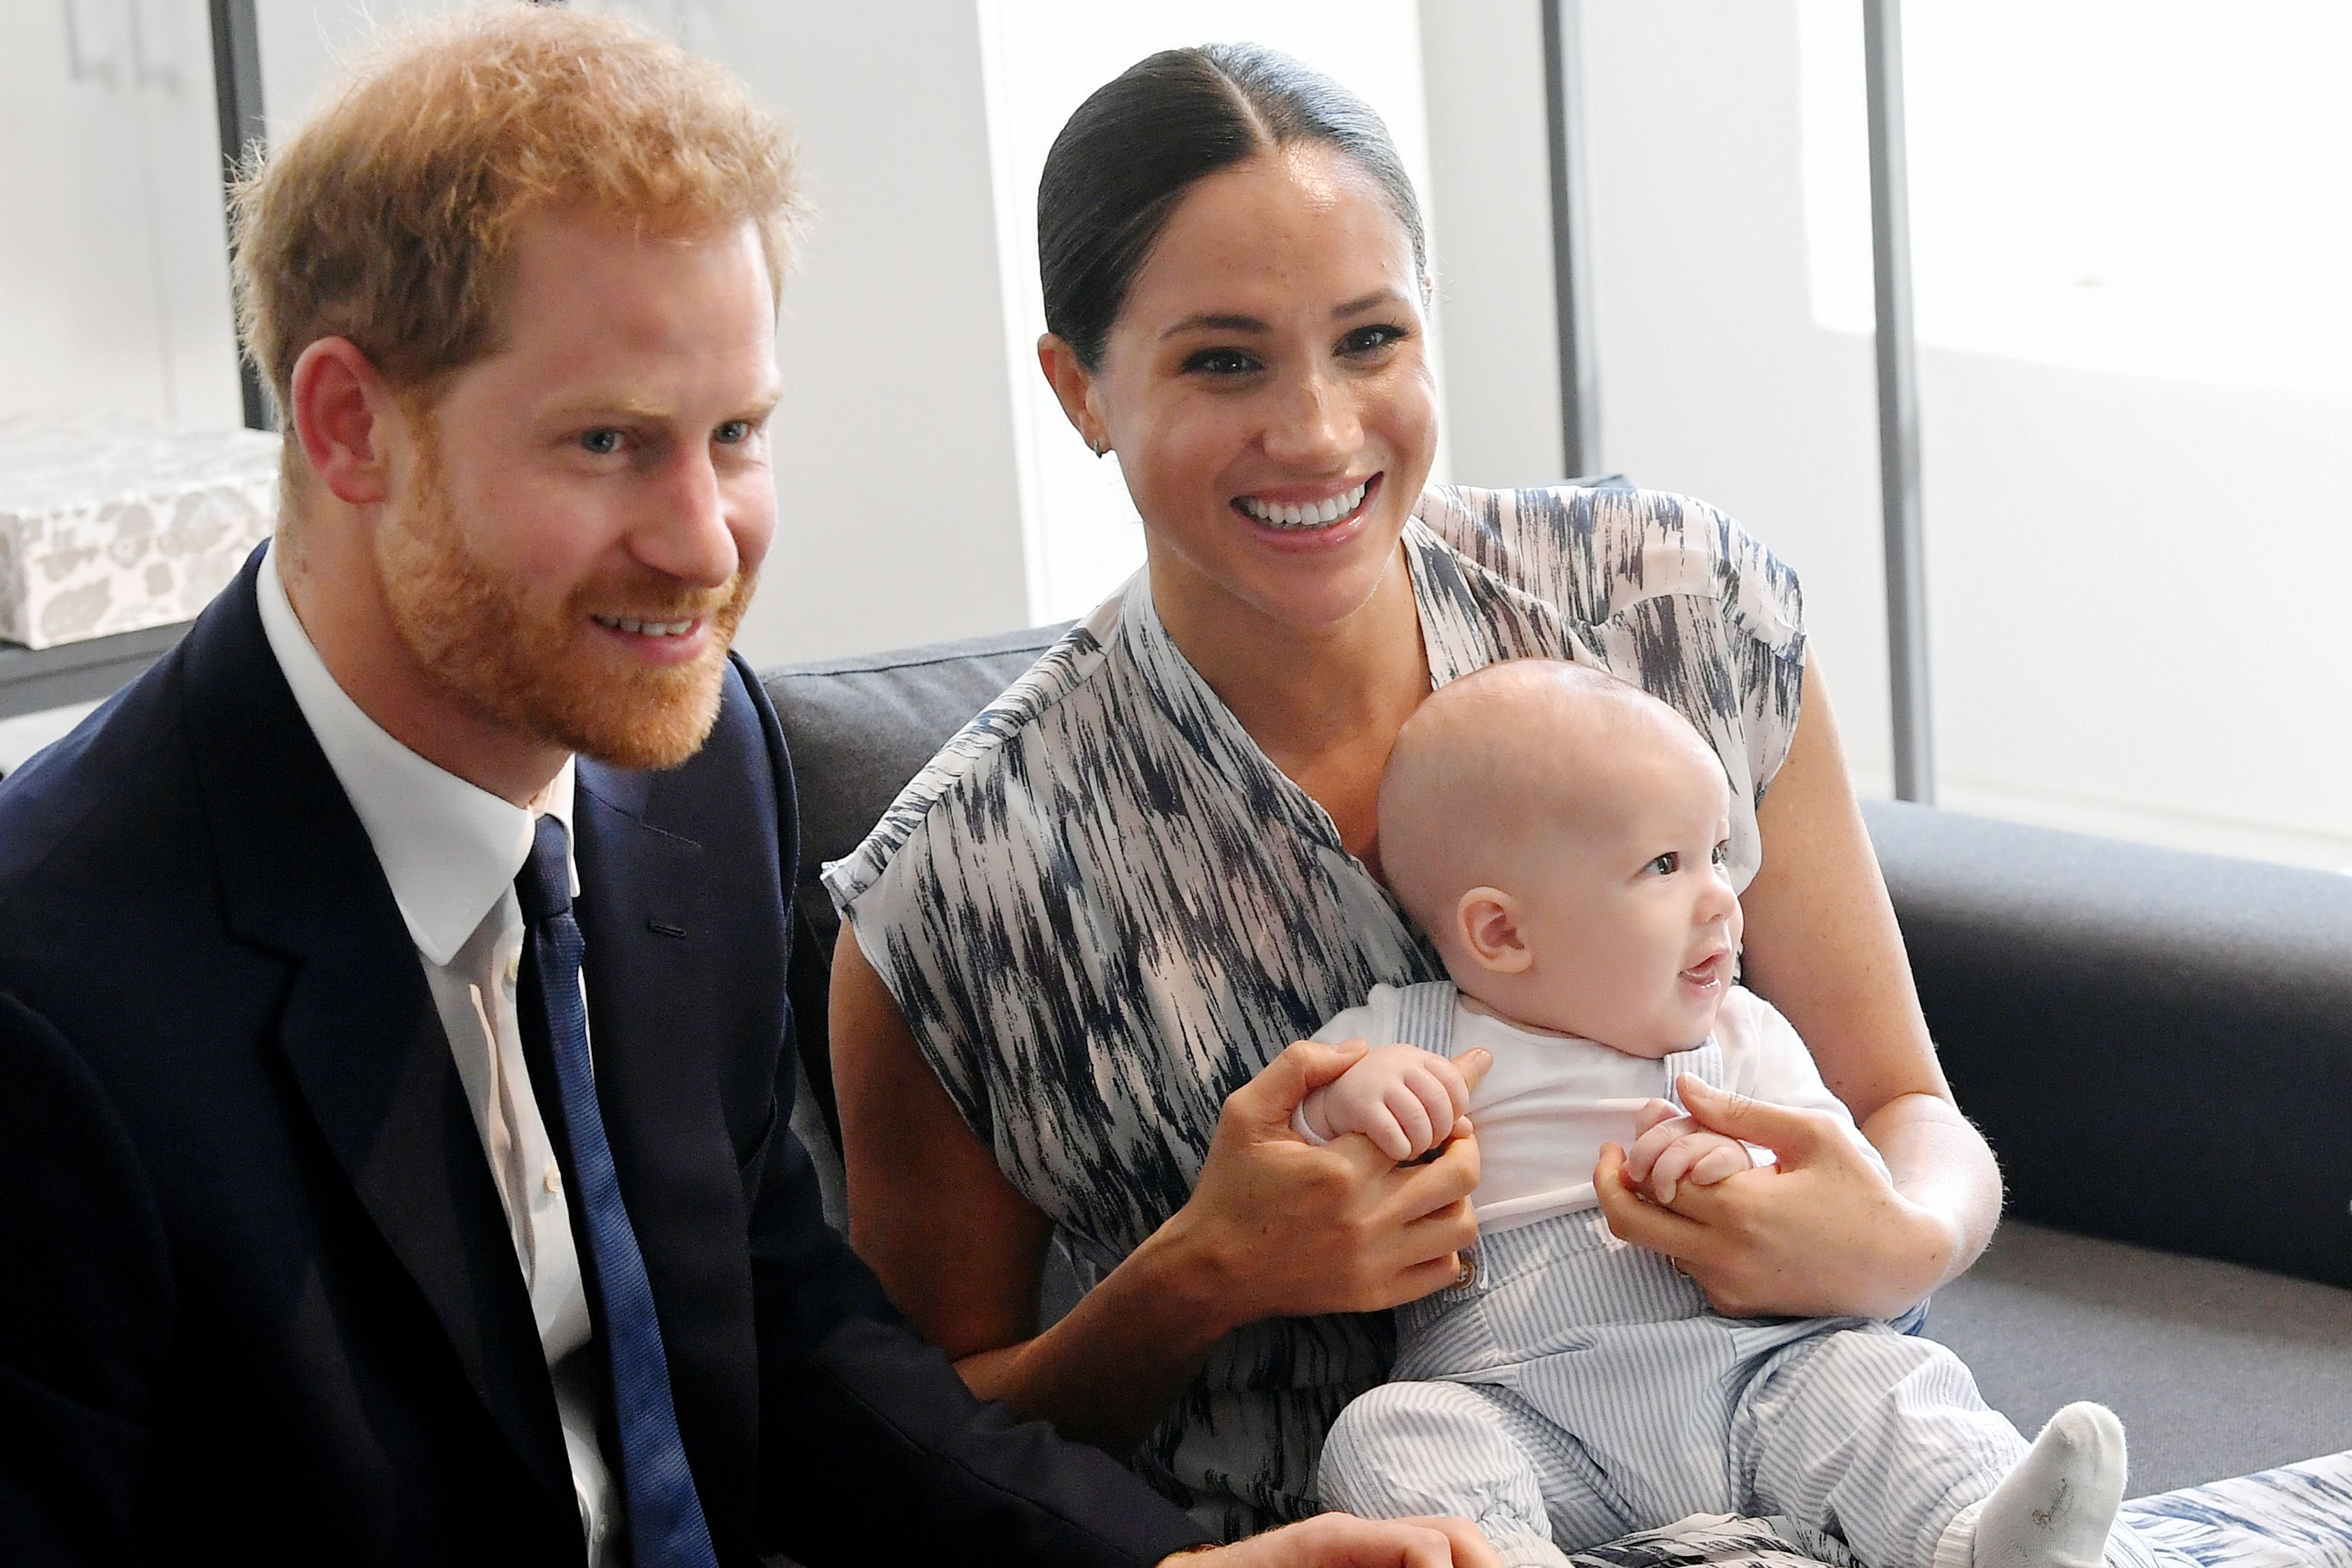 Prince Harry, Meghan, and their baby son Archie Mountbatten-Windsor meet Archbishop Desmond Tutu during their royal tour of South Africa in 2019/Photo:Getty Images